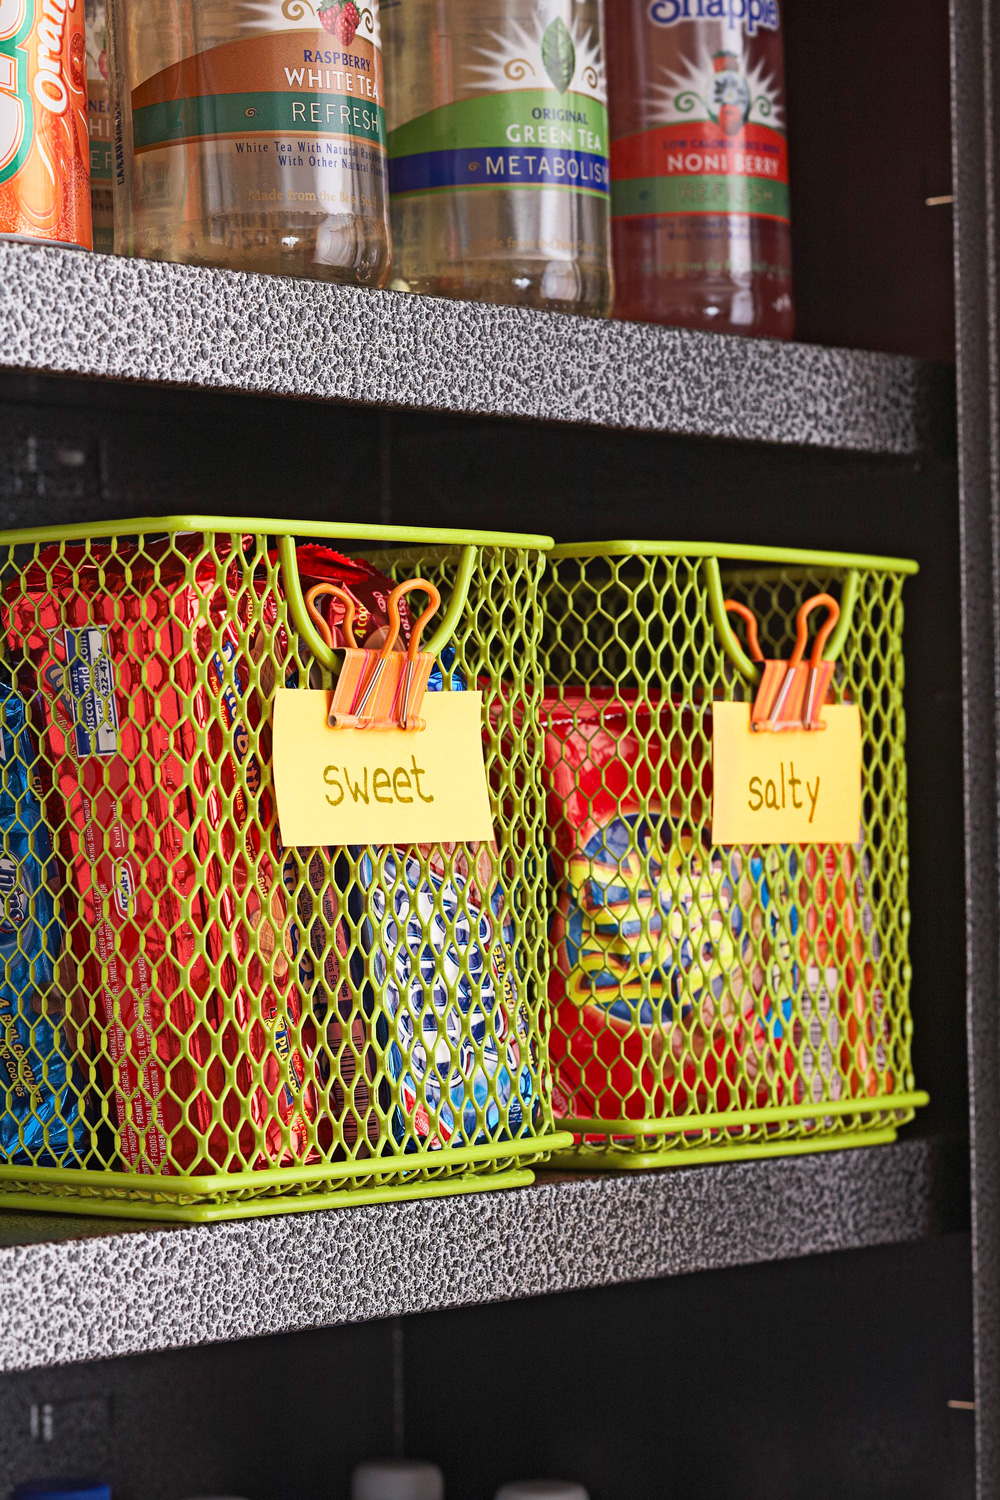 More organizing and storage ideas